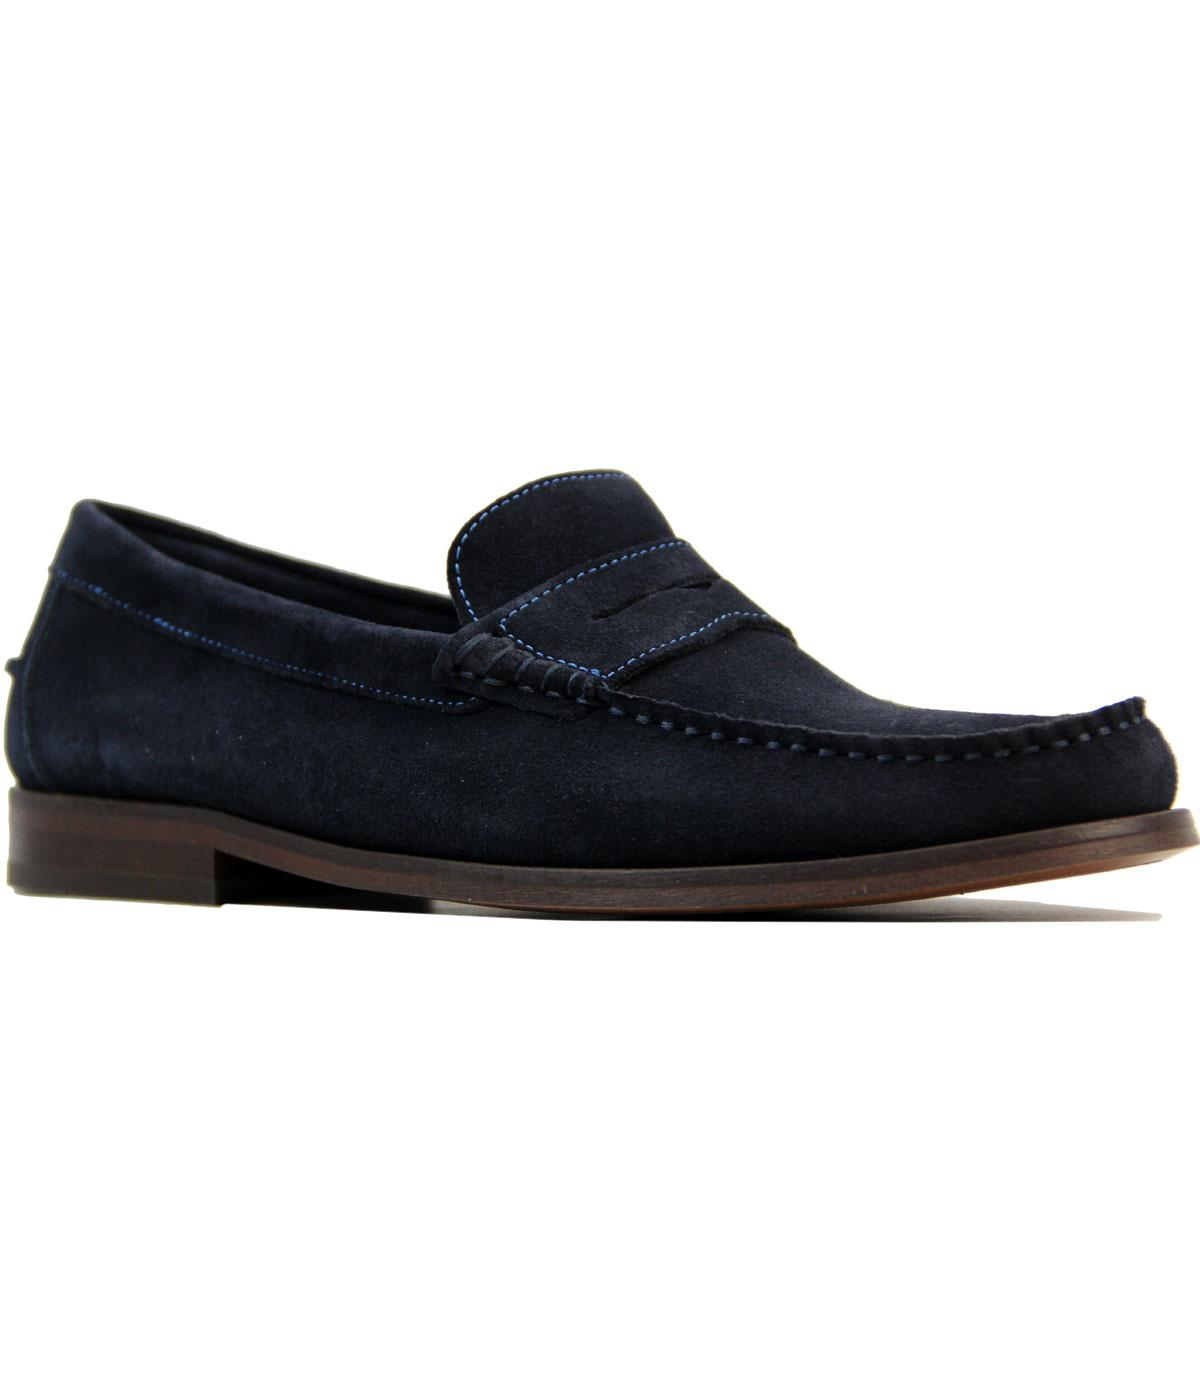 Augusta Suede H by HUDSON Retro Mod Penny Loafers